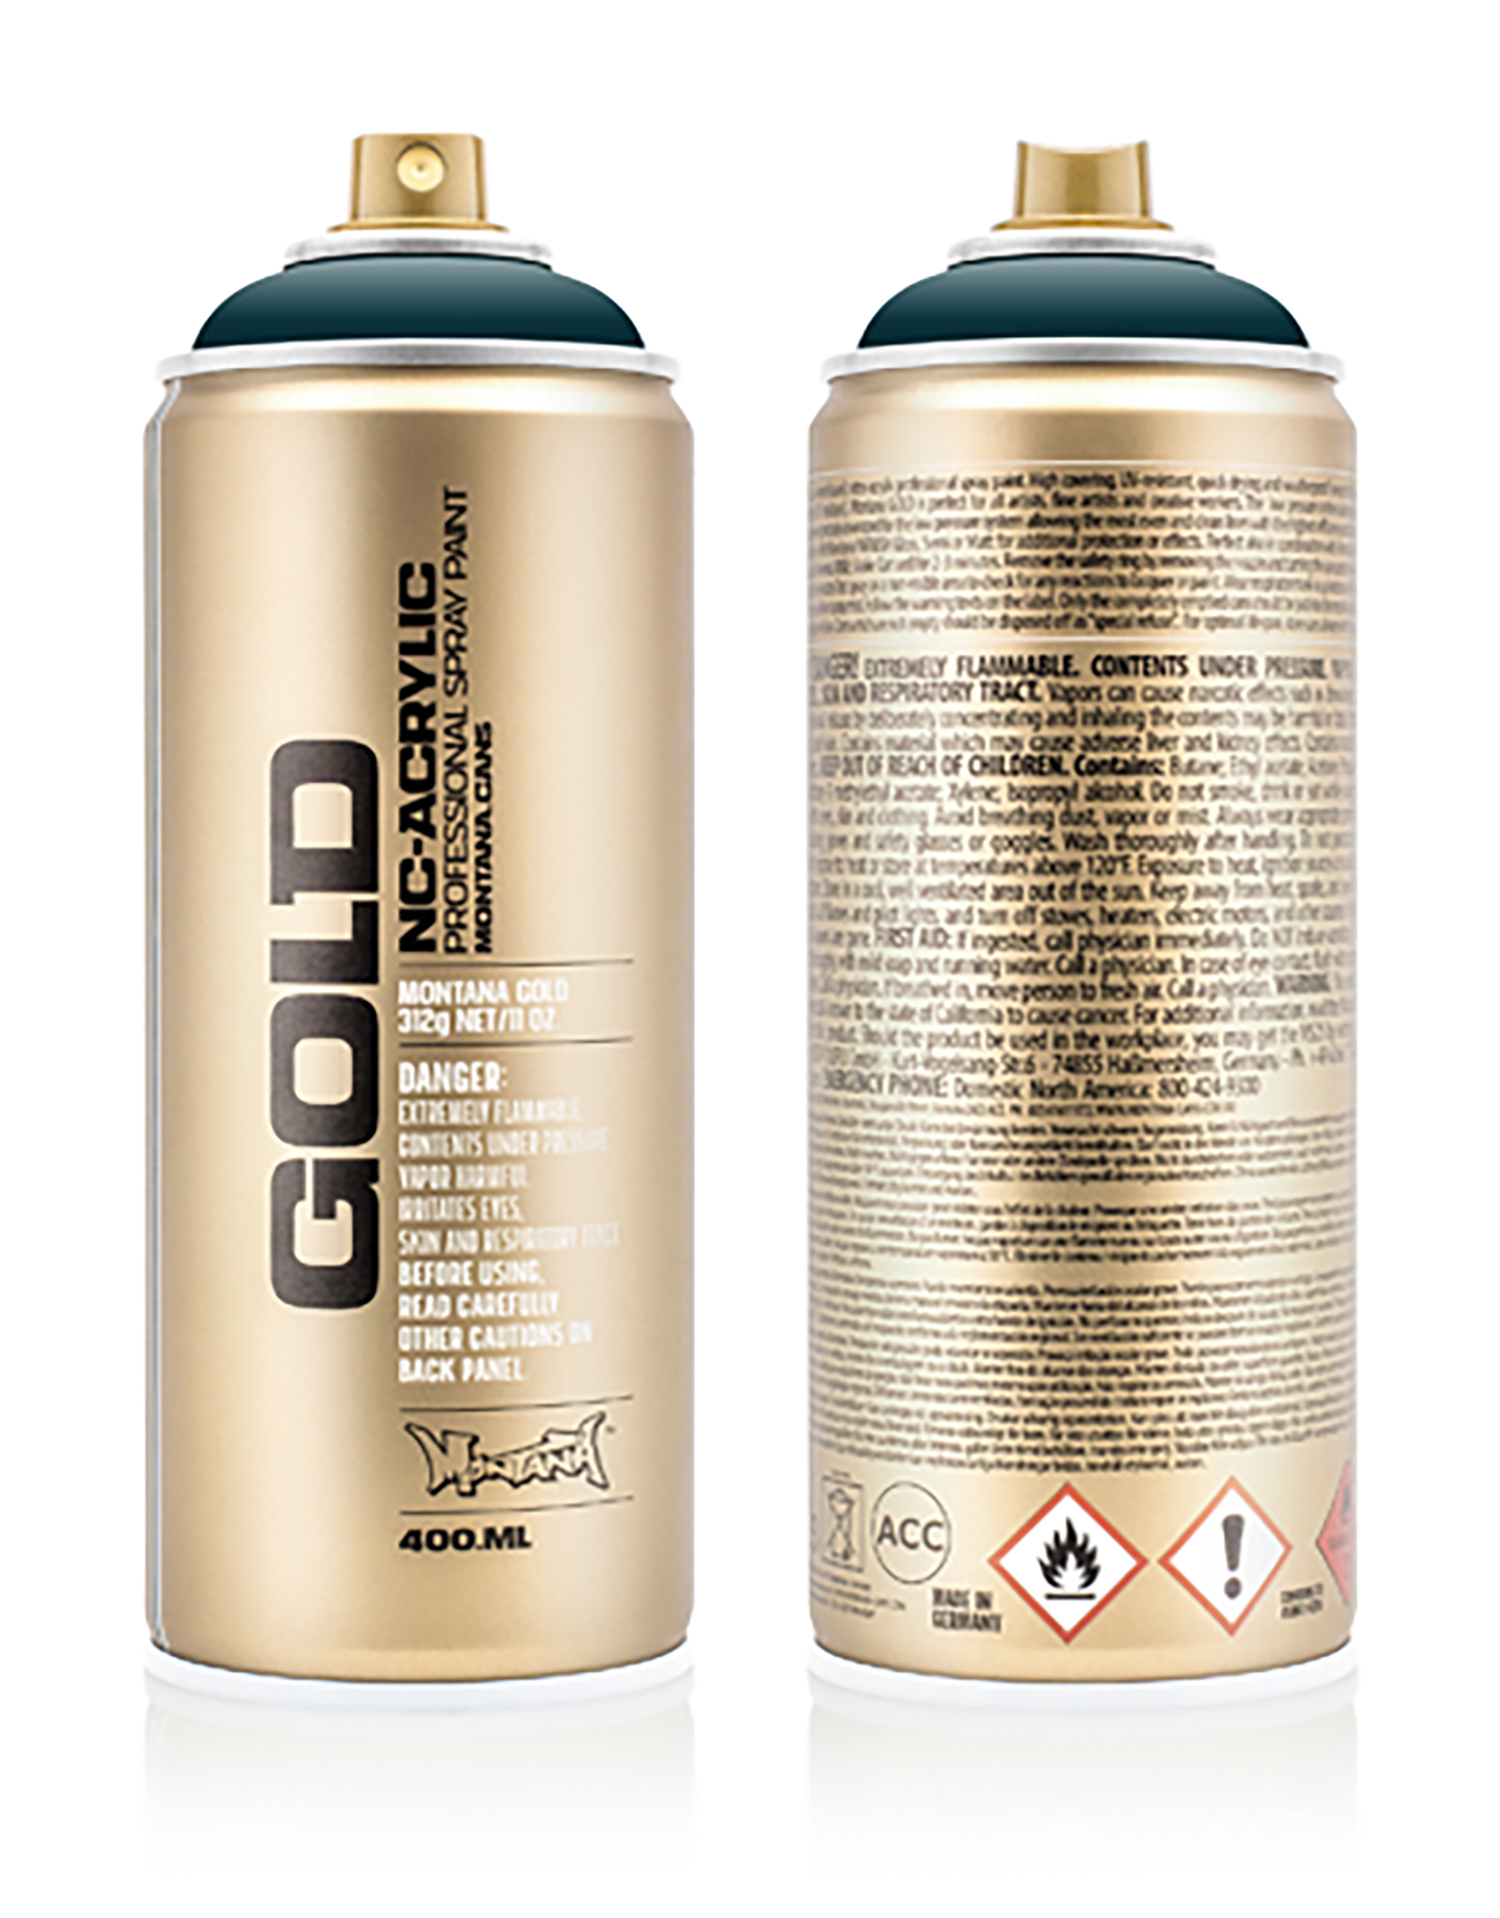 MONTANA-GOLD-SPRAY-400ML-G-5160